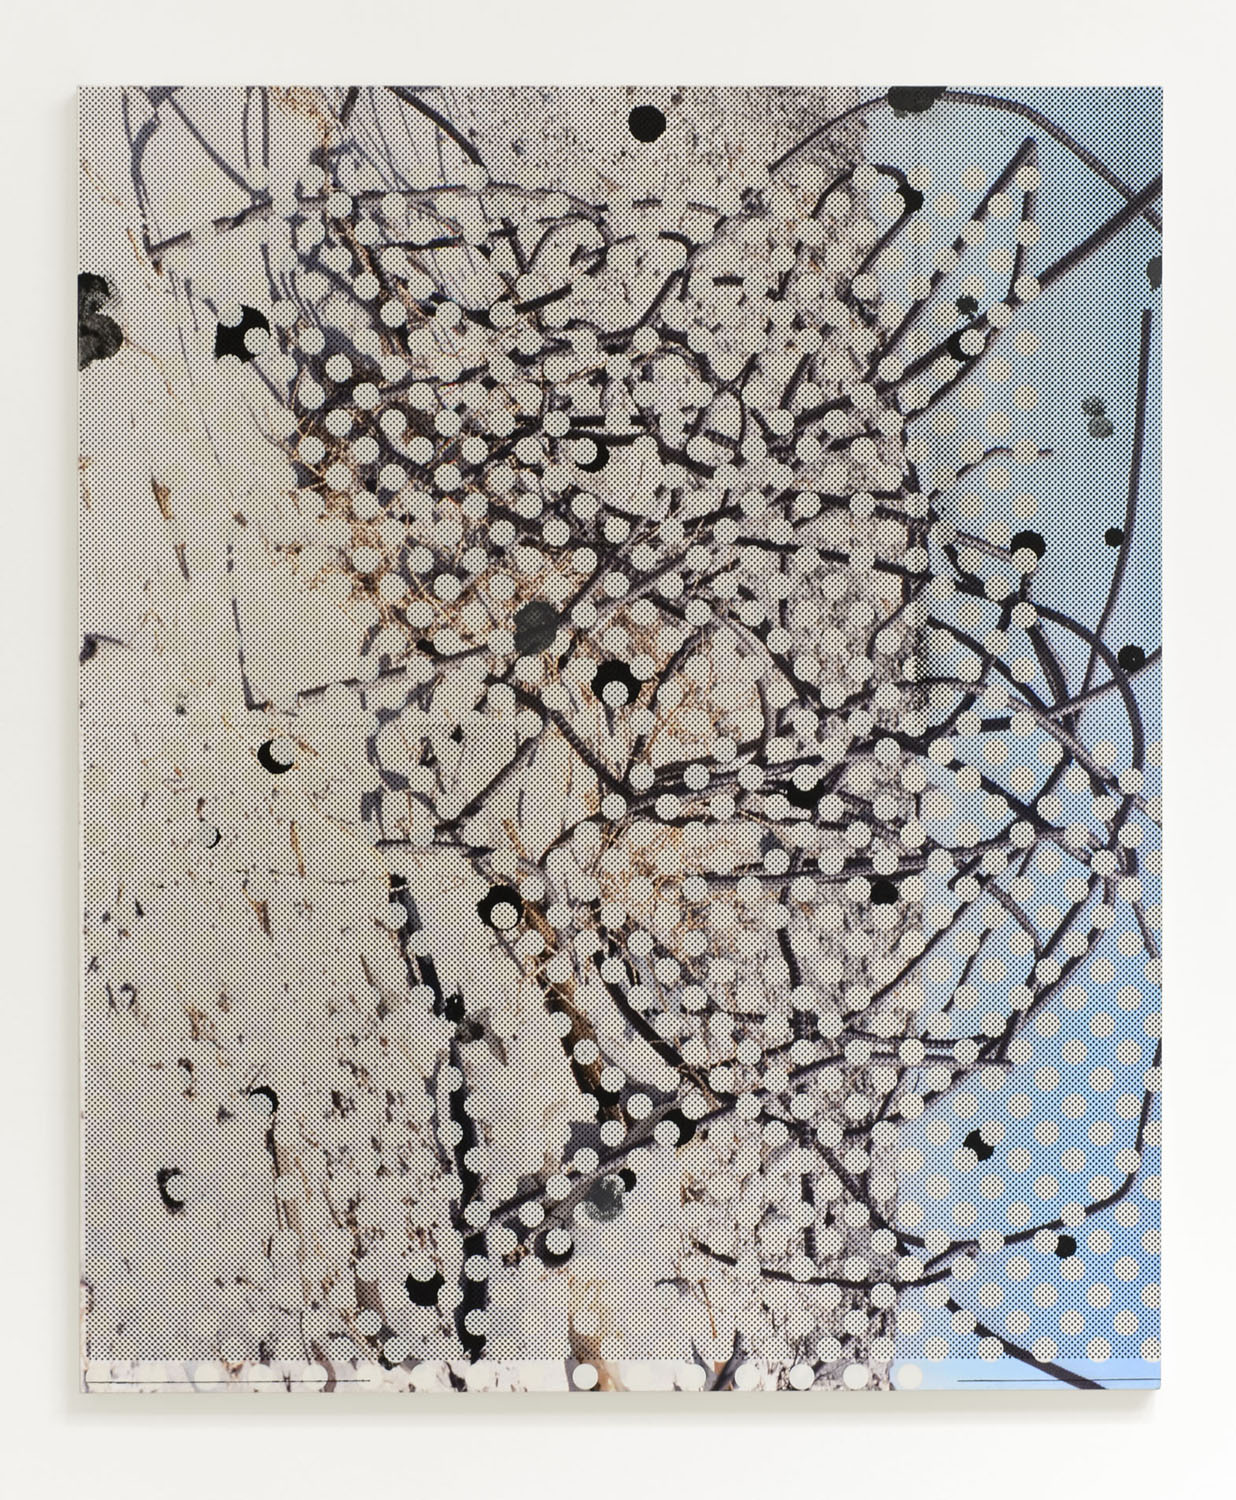 Untitled (rebar 4), 2013  Acrylic, oil and UV cured ink on canvas over panel  65 x 54 inches  165.1 x 137.16 cm